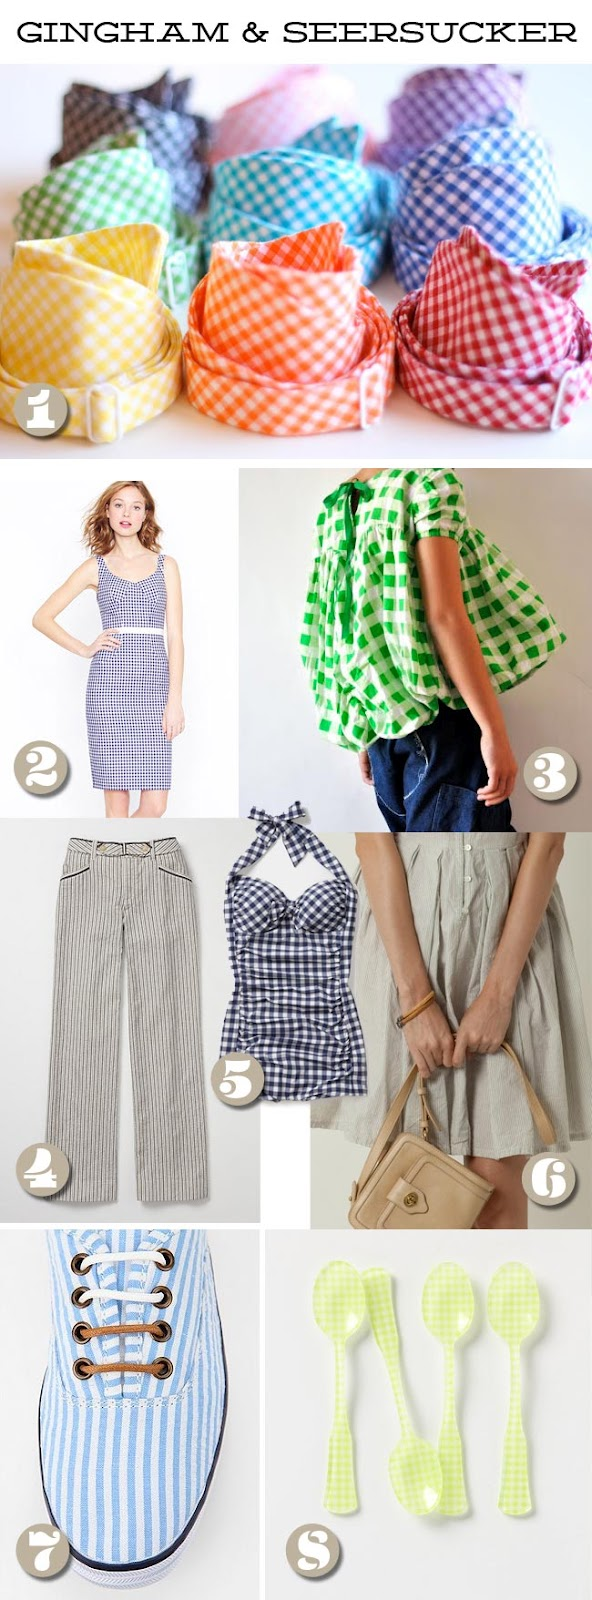 Faves0518Gingham.jpg